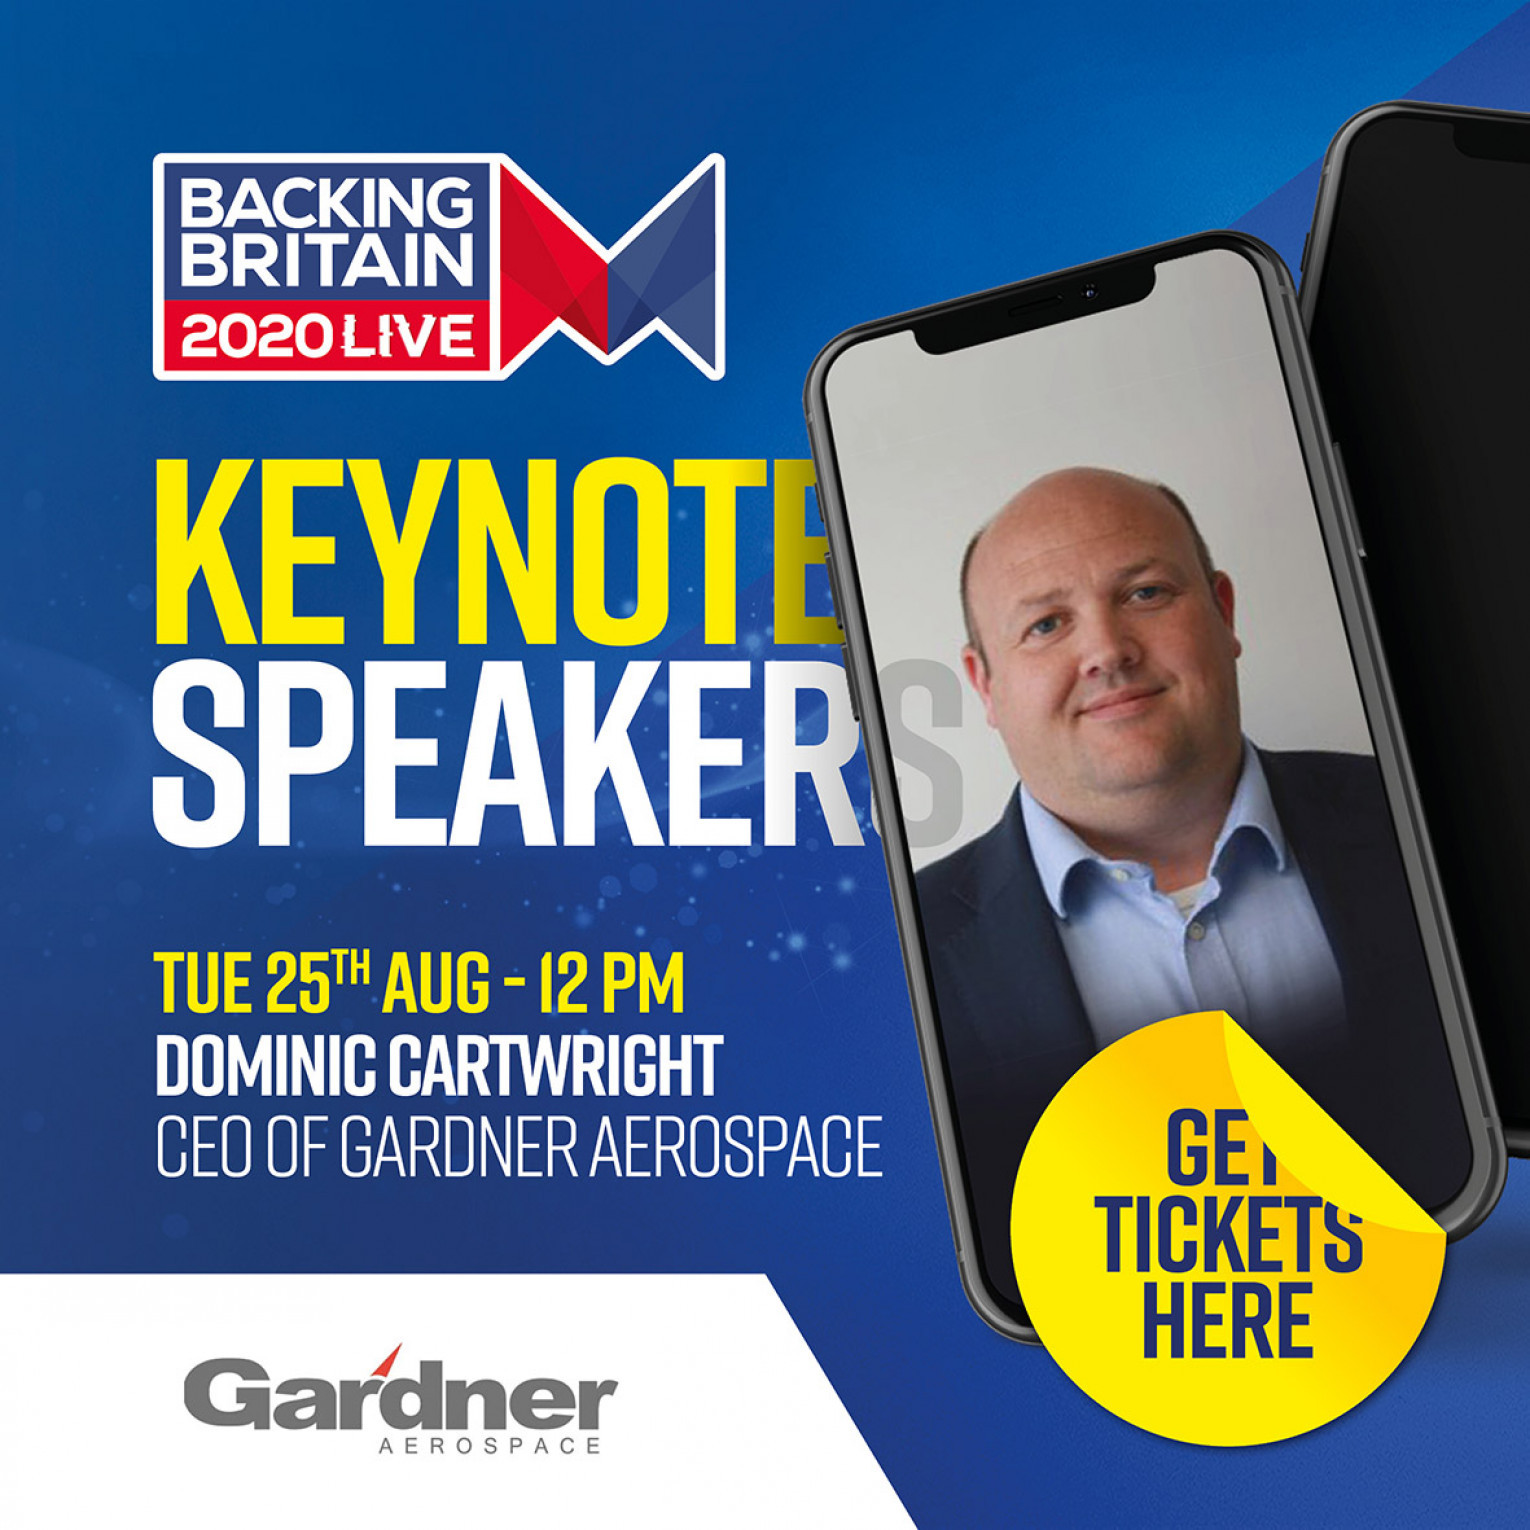 Keynote speaker - Dominic Cartwright CEO of Gardner Aerospace